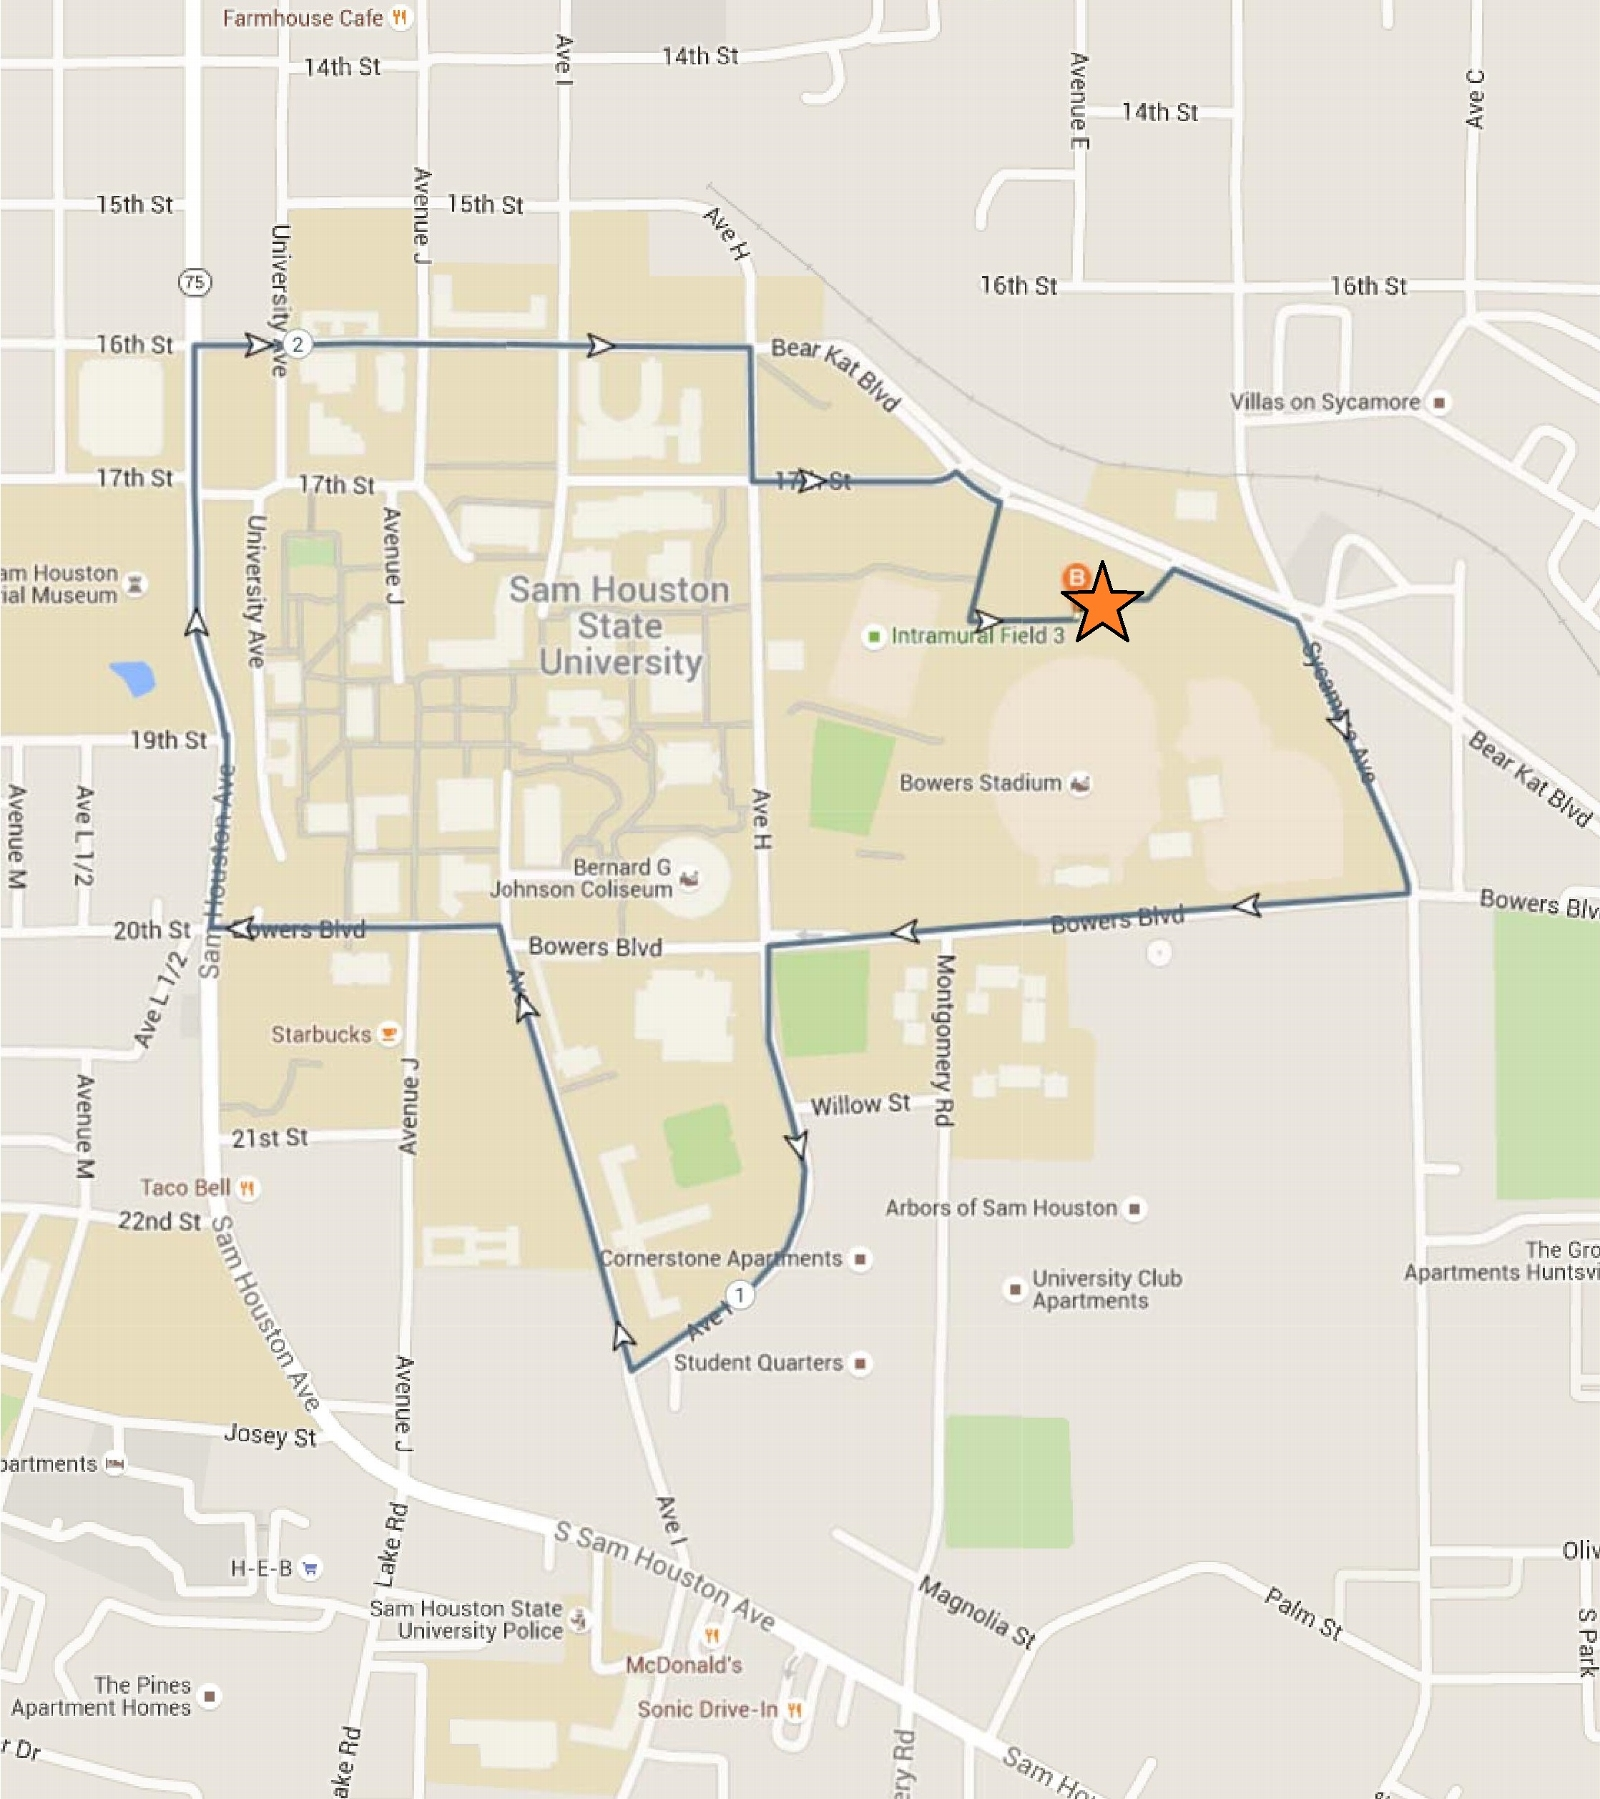 Campus Walk To Highlight Suicide Prevention Sam Houston State